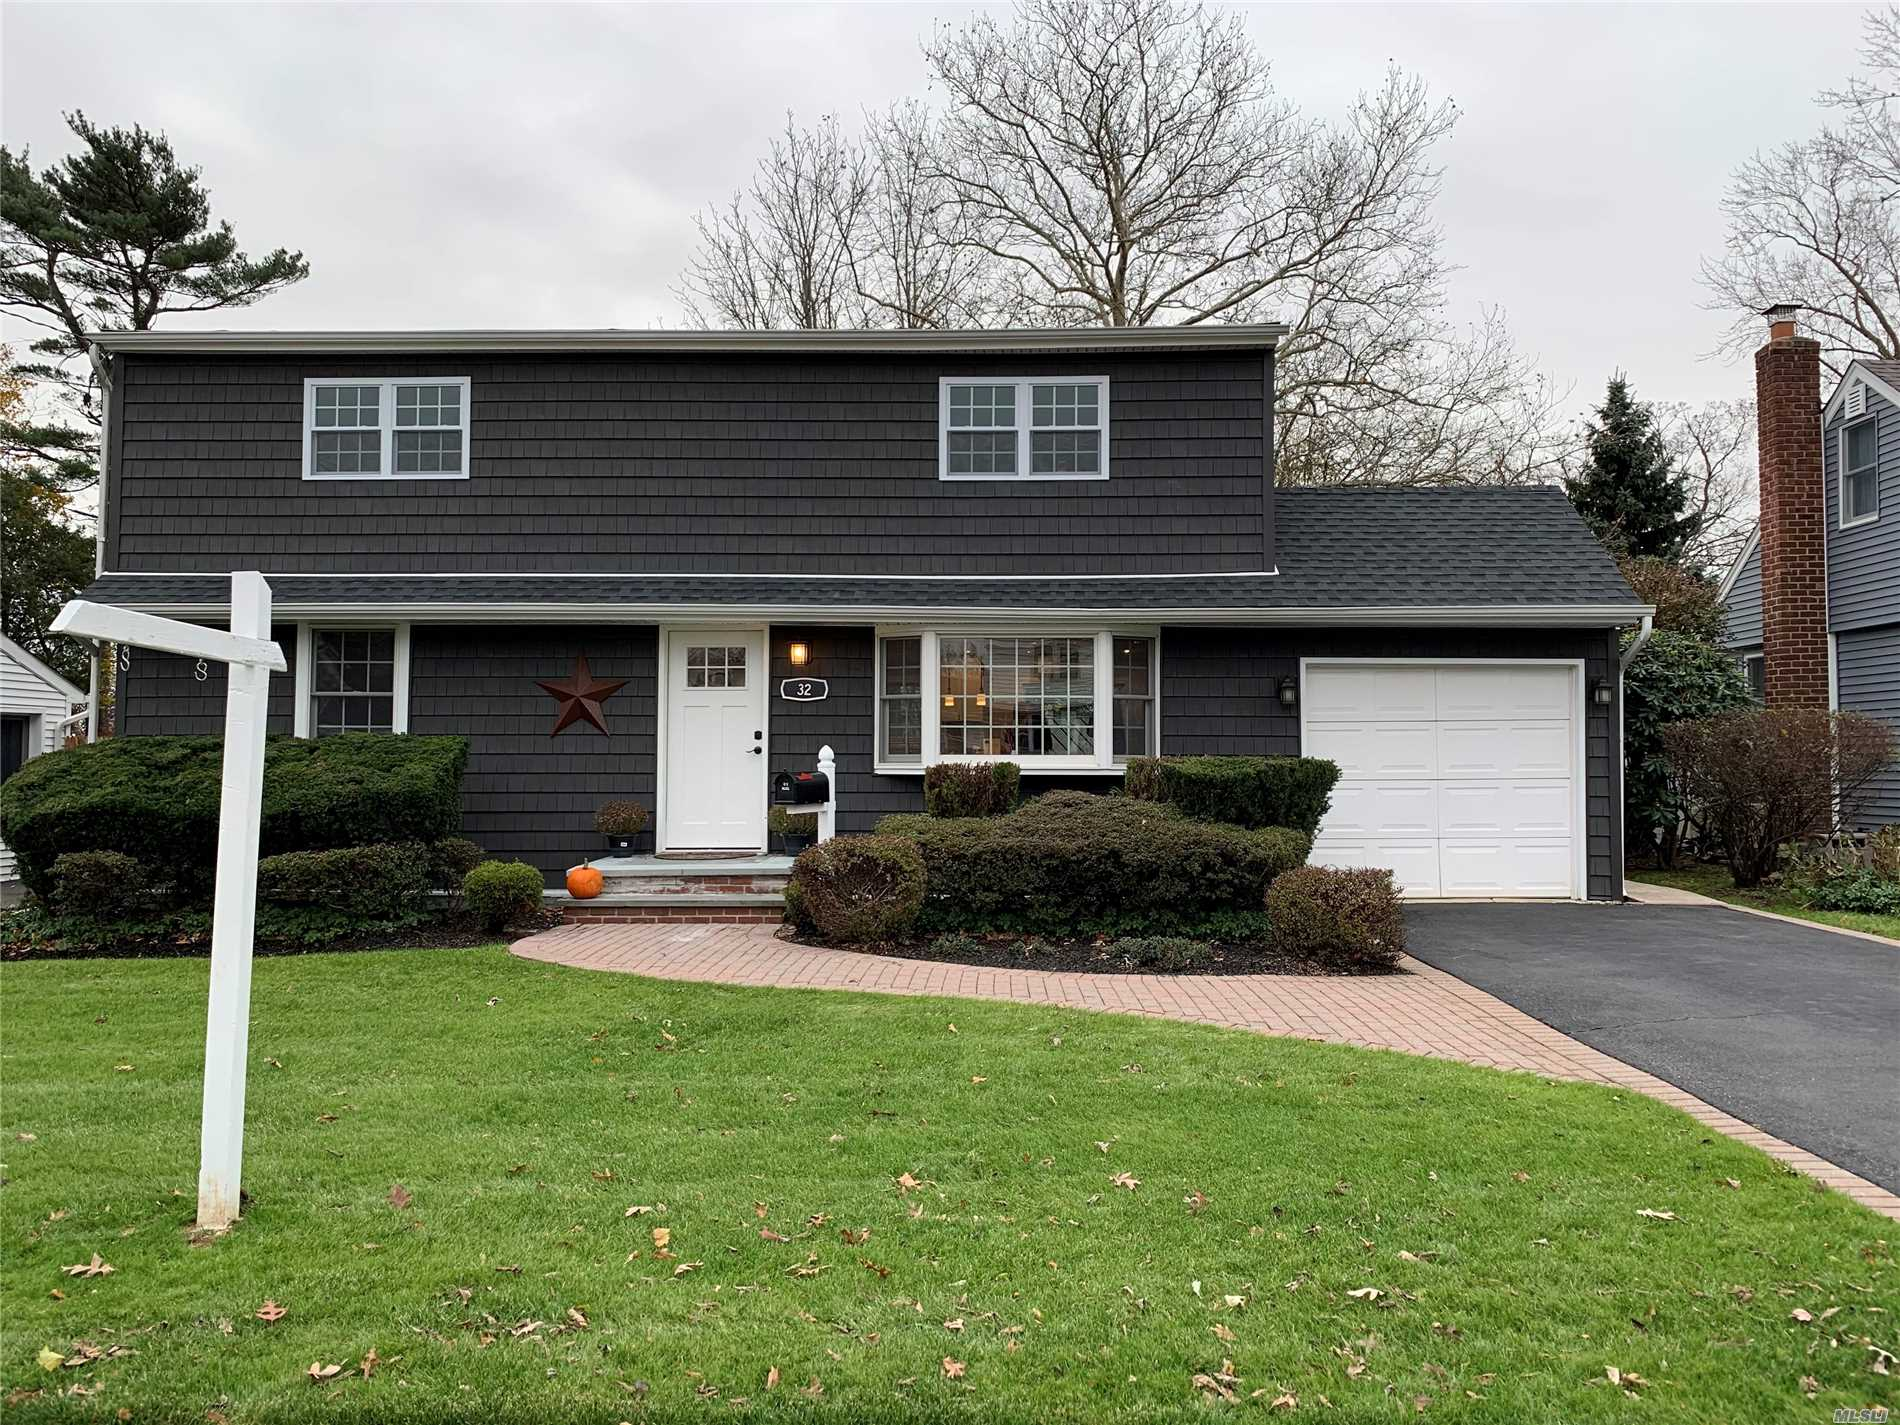 Gorgeous, Newly Renovated Exp. Cape, New Kitchen, 2 New Full Baths, 4 Bedrooms, New Family Room Basement, New Wood Floors, All New Electrical, Plumbing, Sheetrock, Moldings, Windows, Roof, Siding, Doors, Cac, 200 Amp Electric, O/S Park-Like Yard, 1 Car Garage, Igs. Move Right In & Unpack!